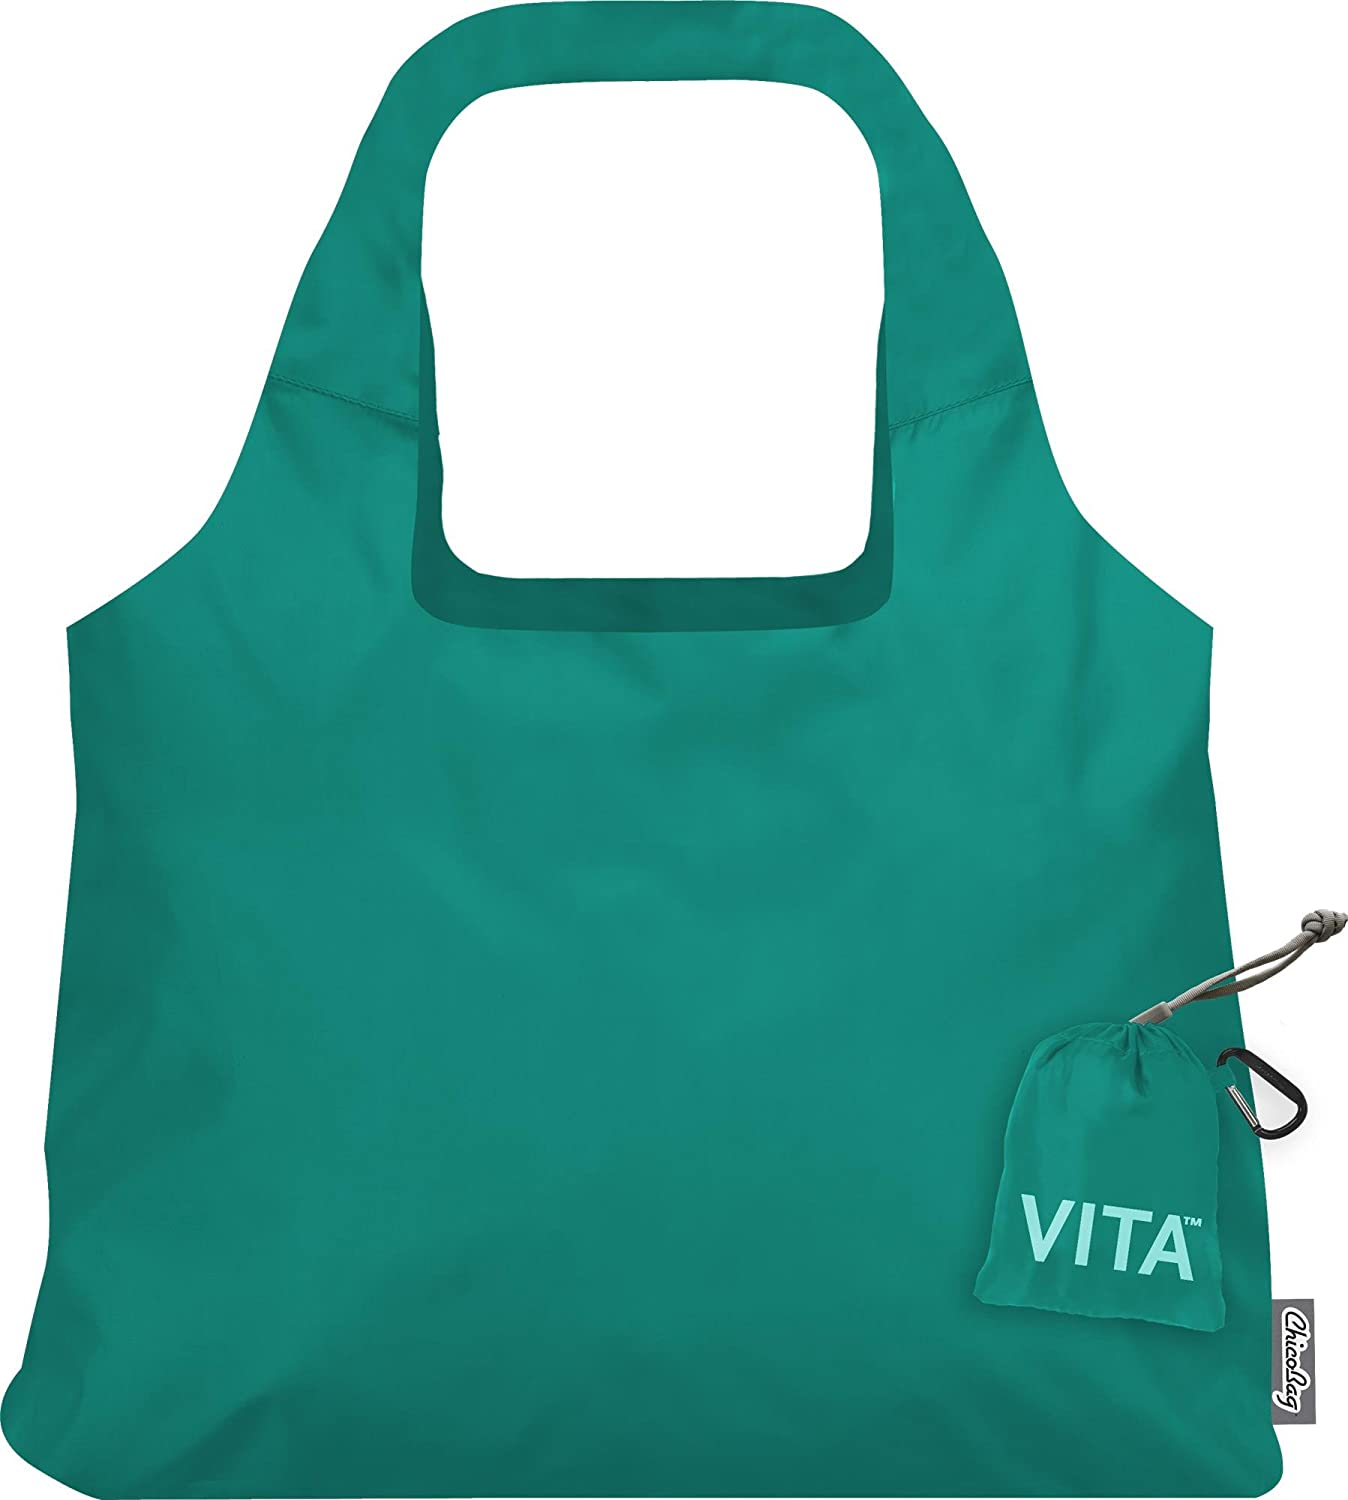 ChicoBag Vita Compactable Reusable Shopping Tote/Grocery Bag with Pouch, Aqua, 19 x 12.5-Inch Bag, 4 x 4-Inch Pouch VSAQ